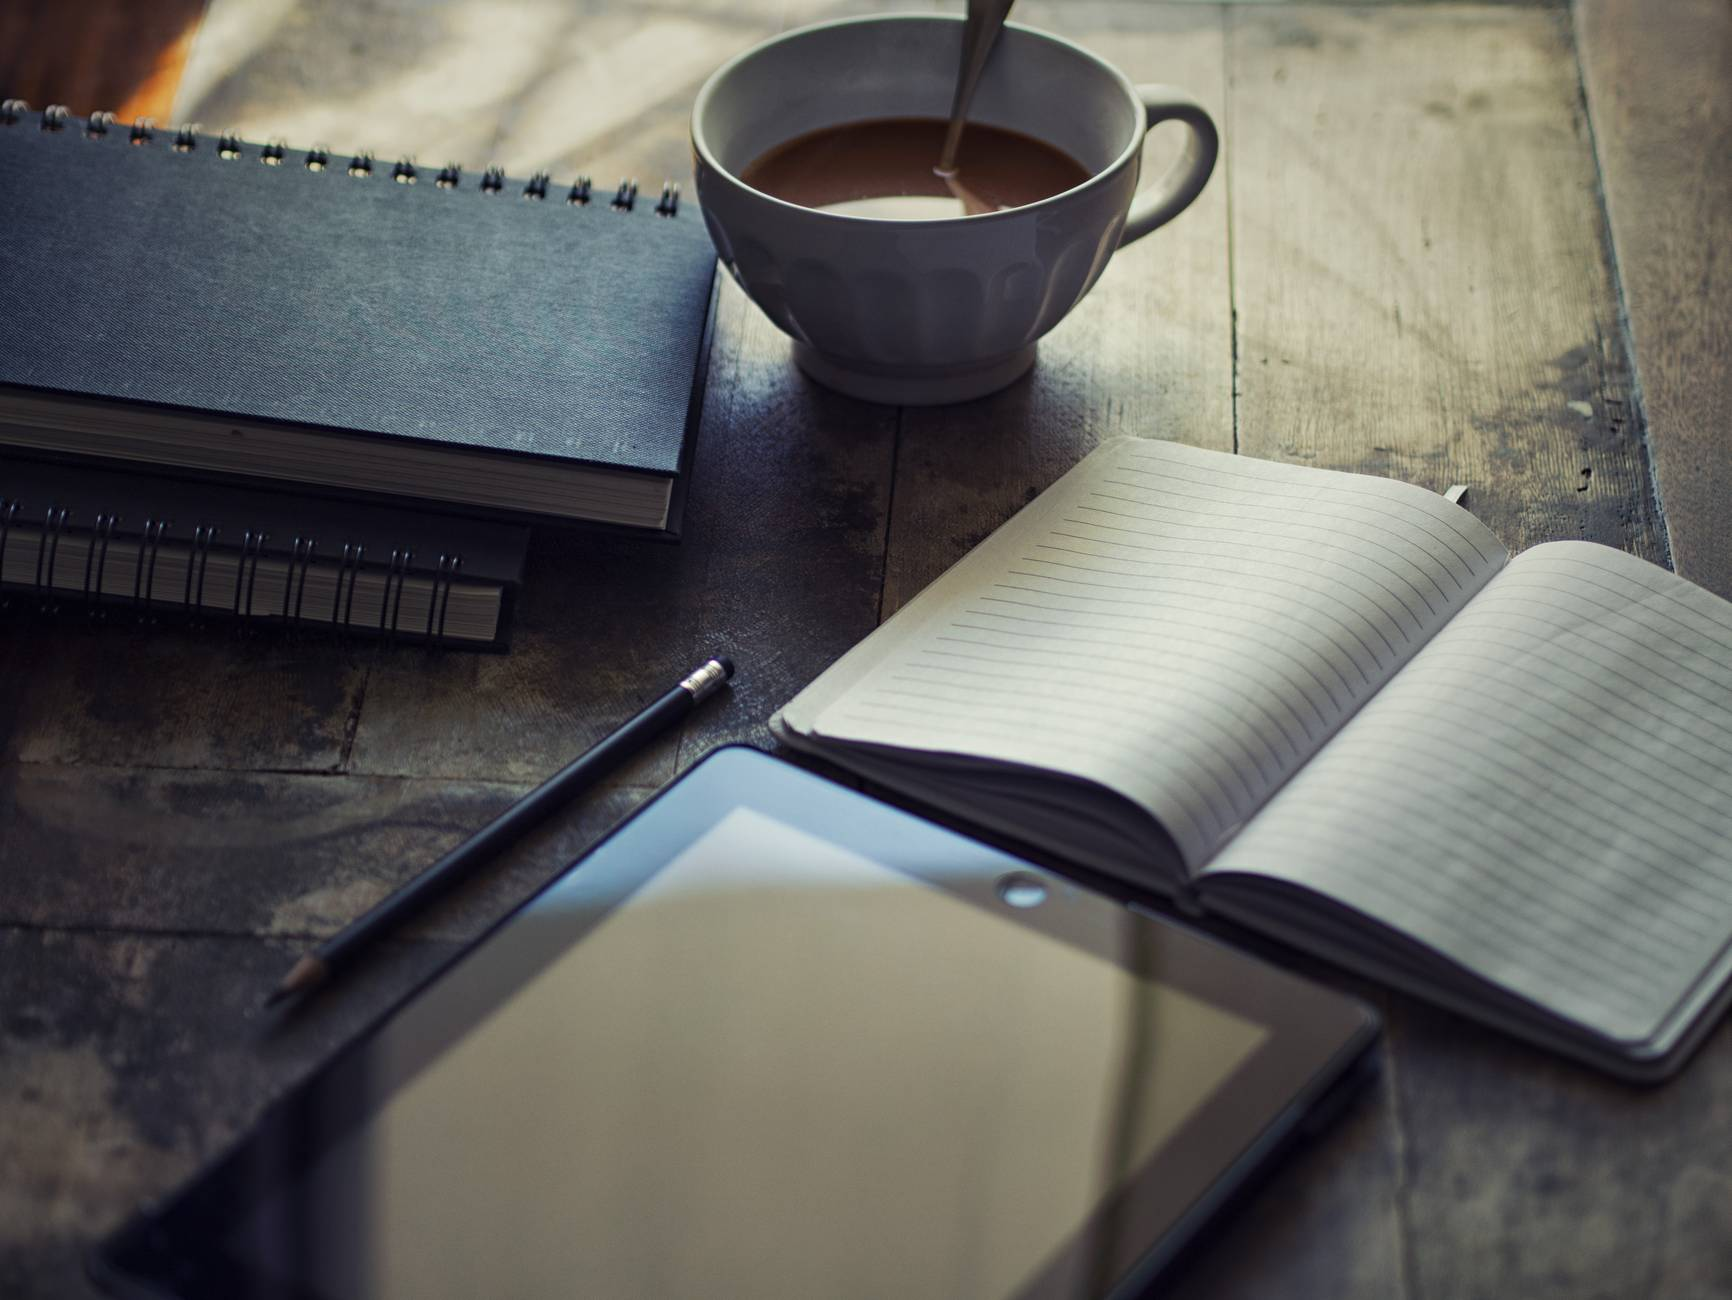 Black tablet and notebook on a table, with a drink of coffee.